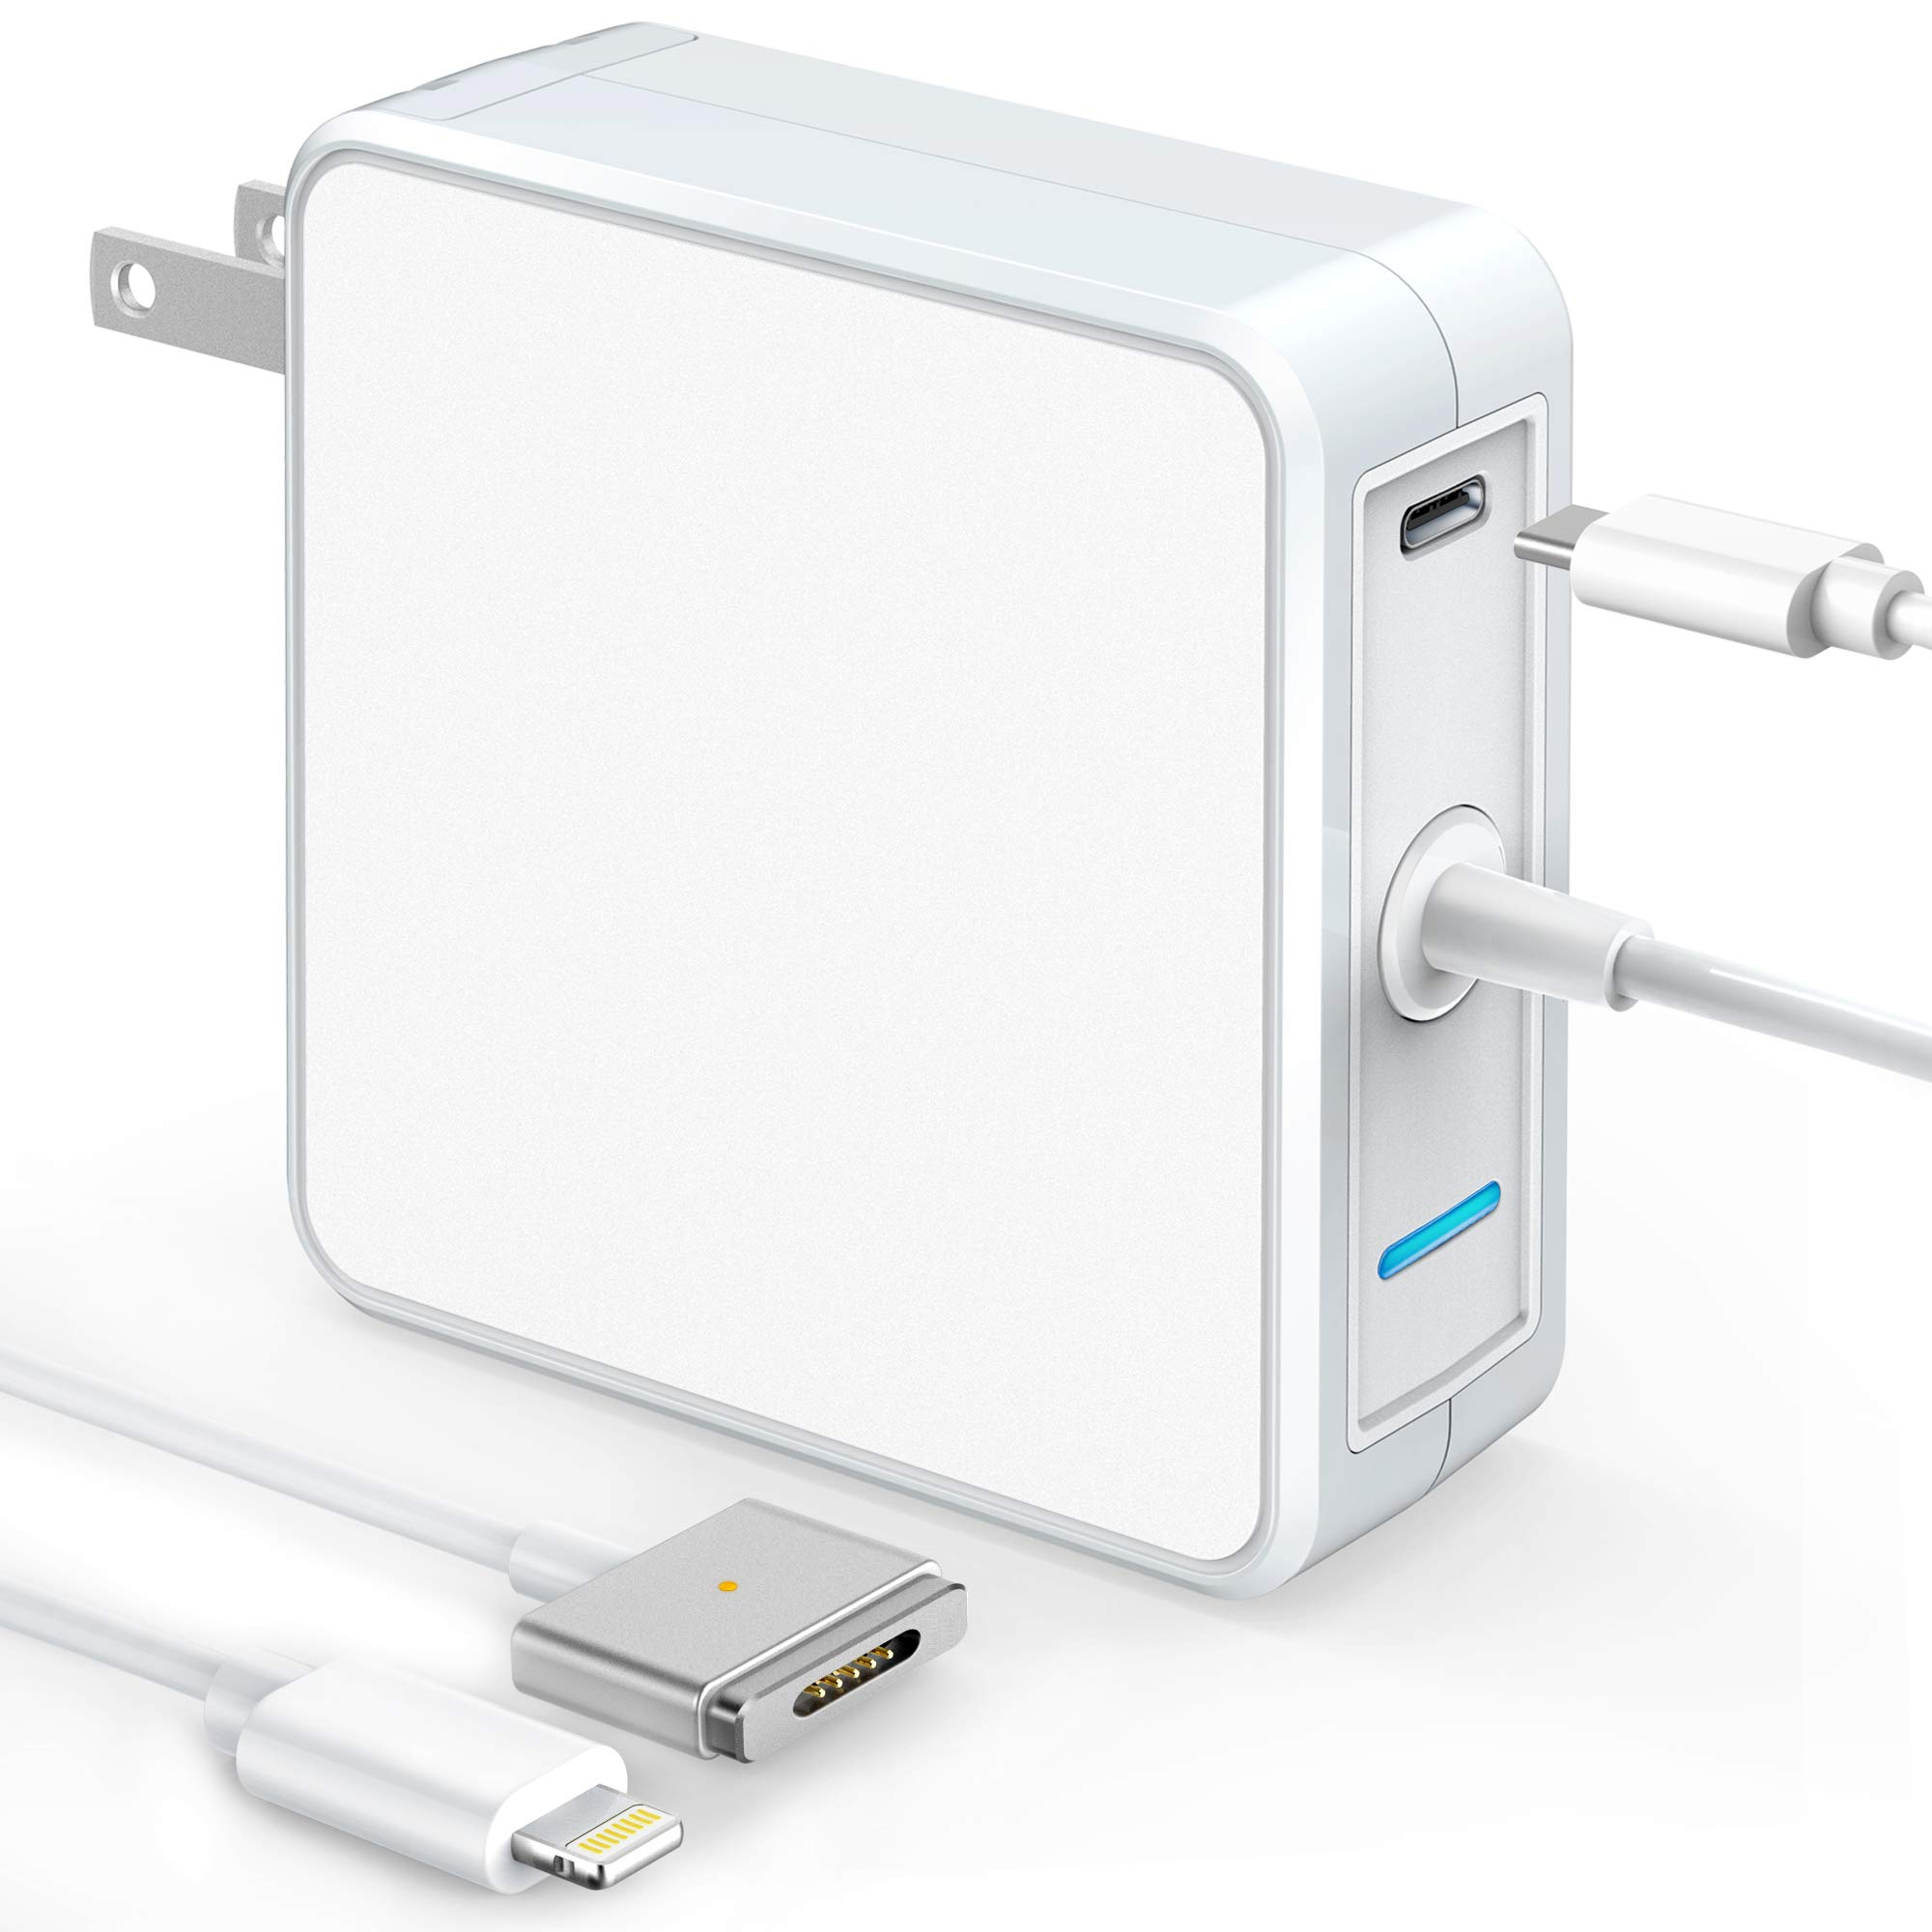 Mac Book Pro Charger, 60W T-Tip Magsafe 2 Power Adapter & 18W USB C Fast Power Delivery Type C Charger for MacBook Charger/Mac Book Air (After Late 2012) and iPad iPhone 11 Pro Max - Total 78W